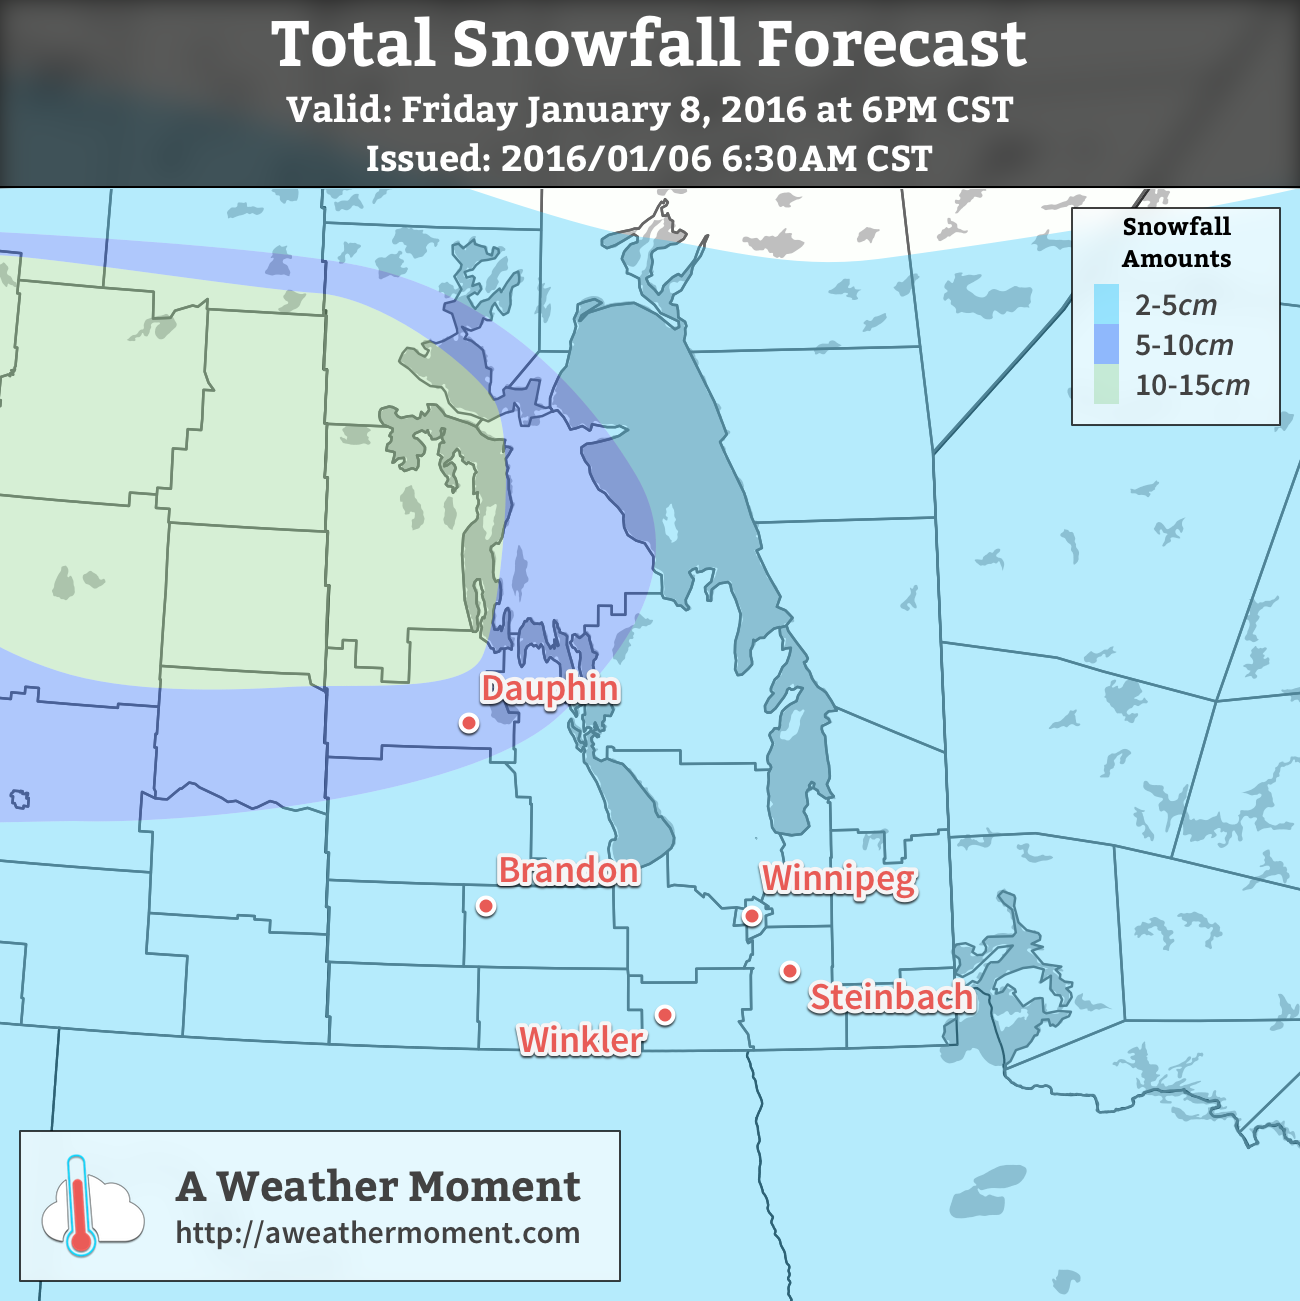 AWM Snowfall Forecast for January 7-8, 2016